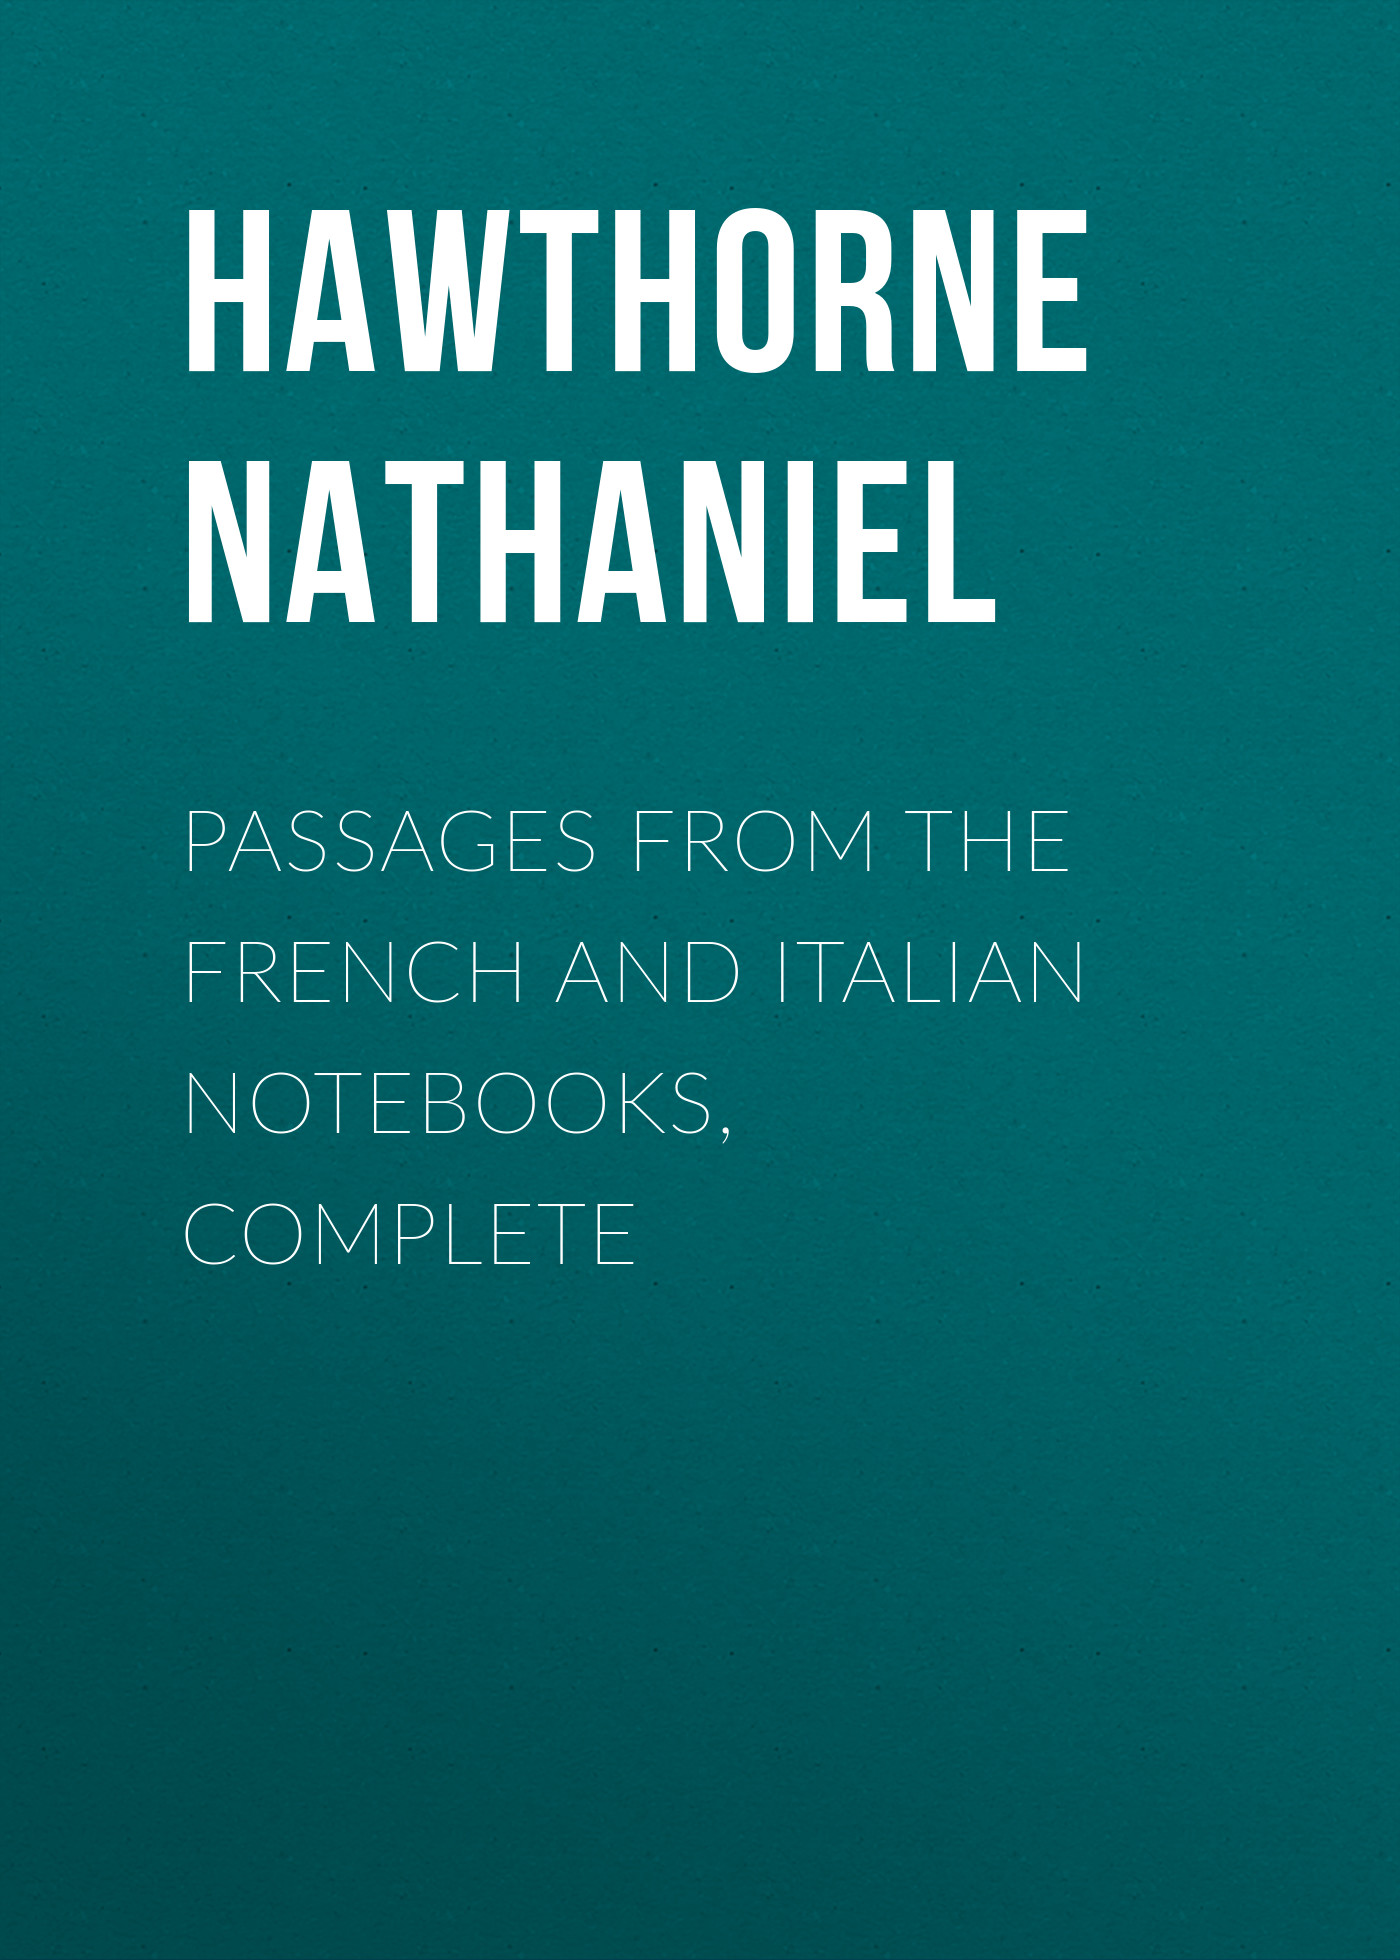 лучшая цена Hawthorne Nathaniel Passages from the French and Italian Notebooks, Complete